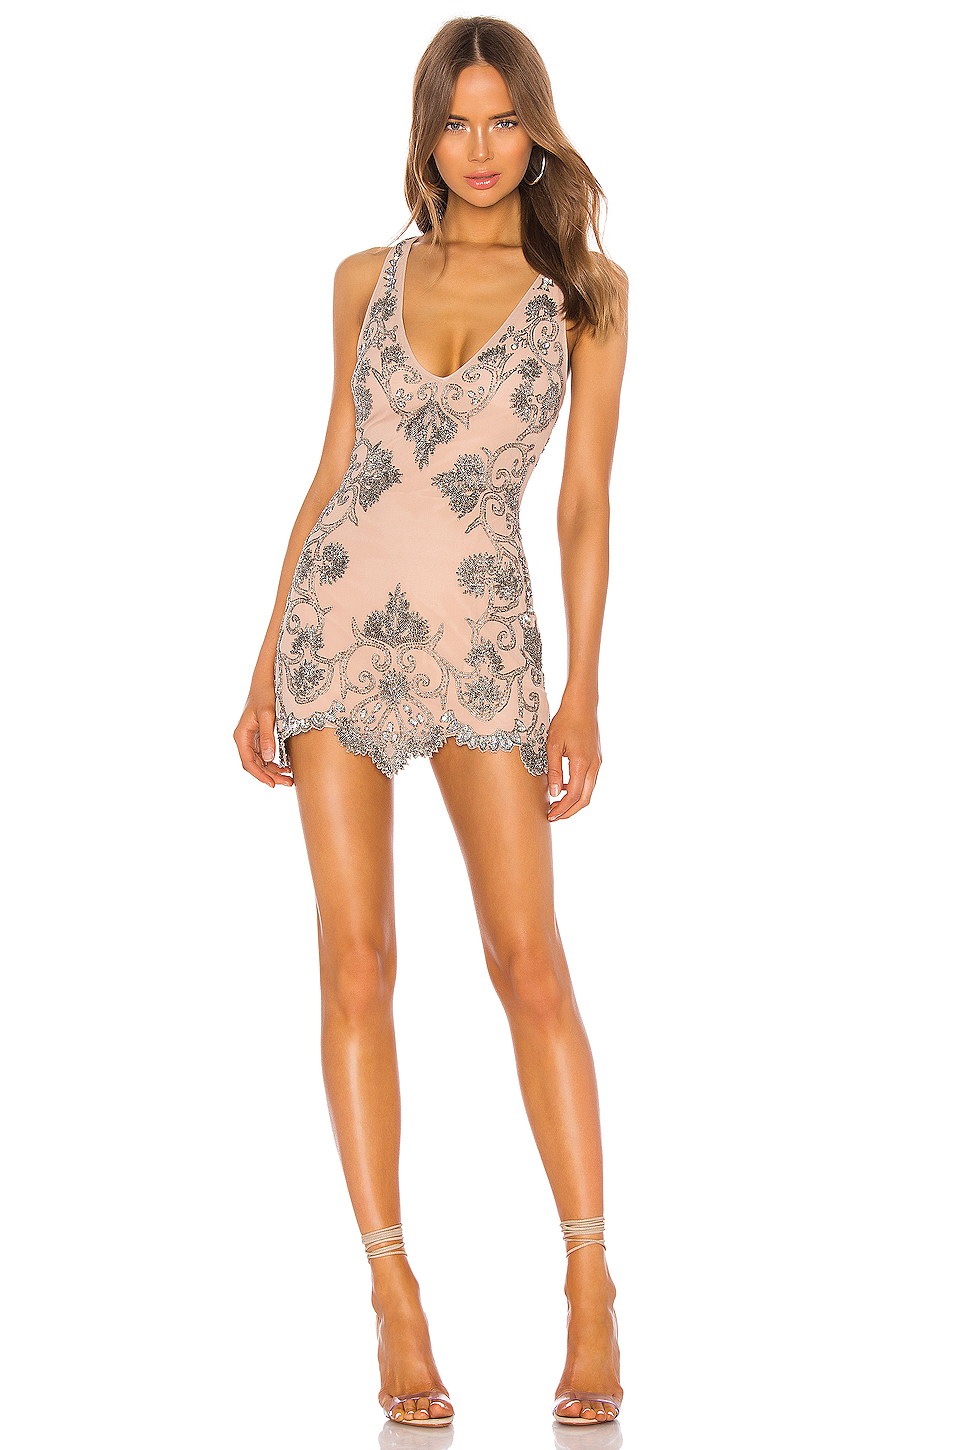 X by NBD Rocca Embellished Mini Dress